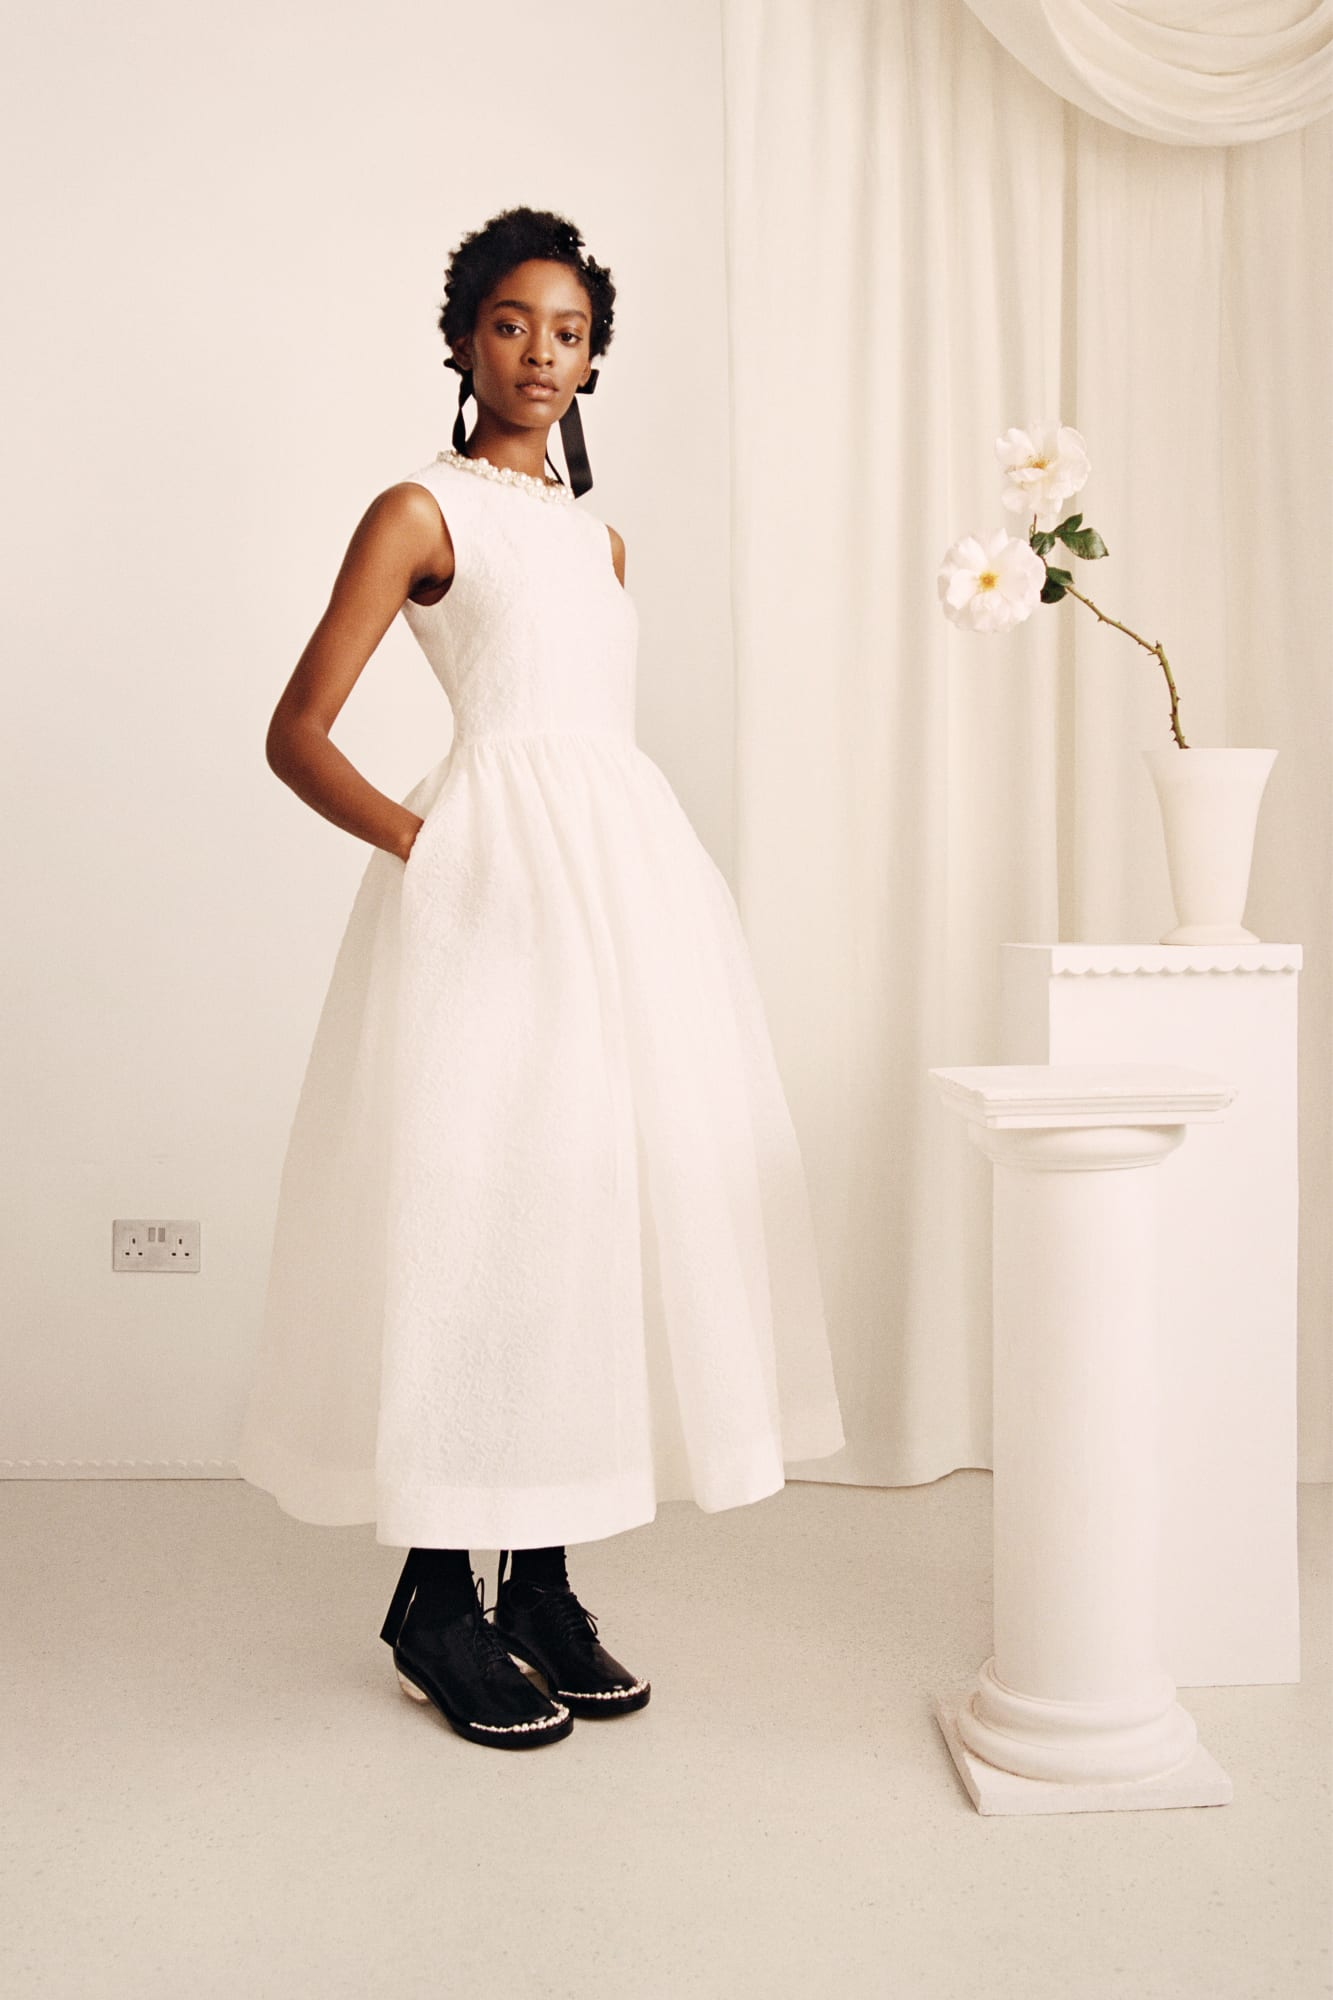 The Simone Rocha x H&M collection